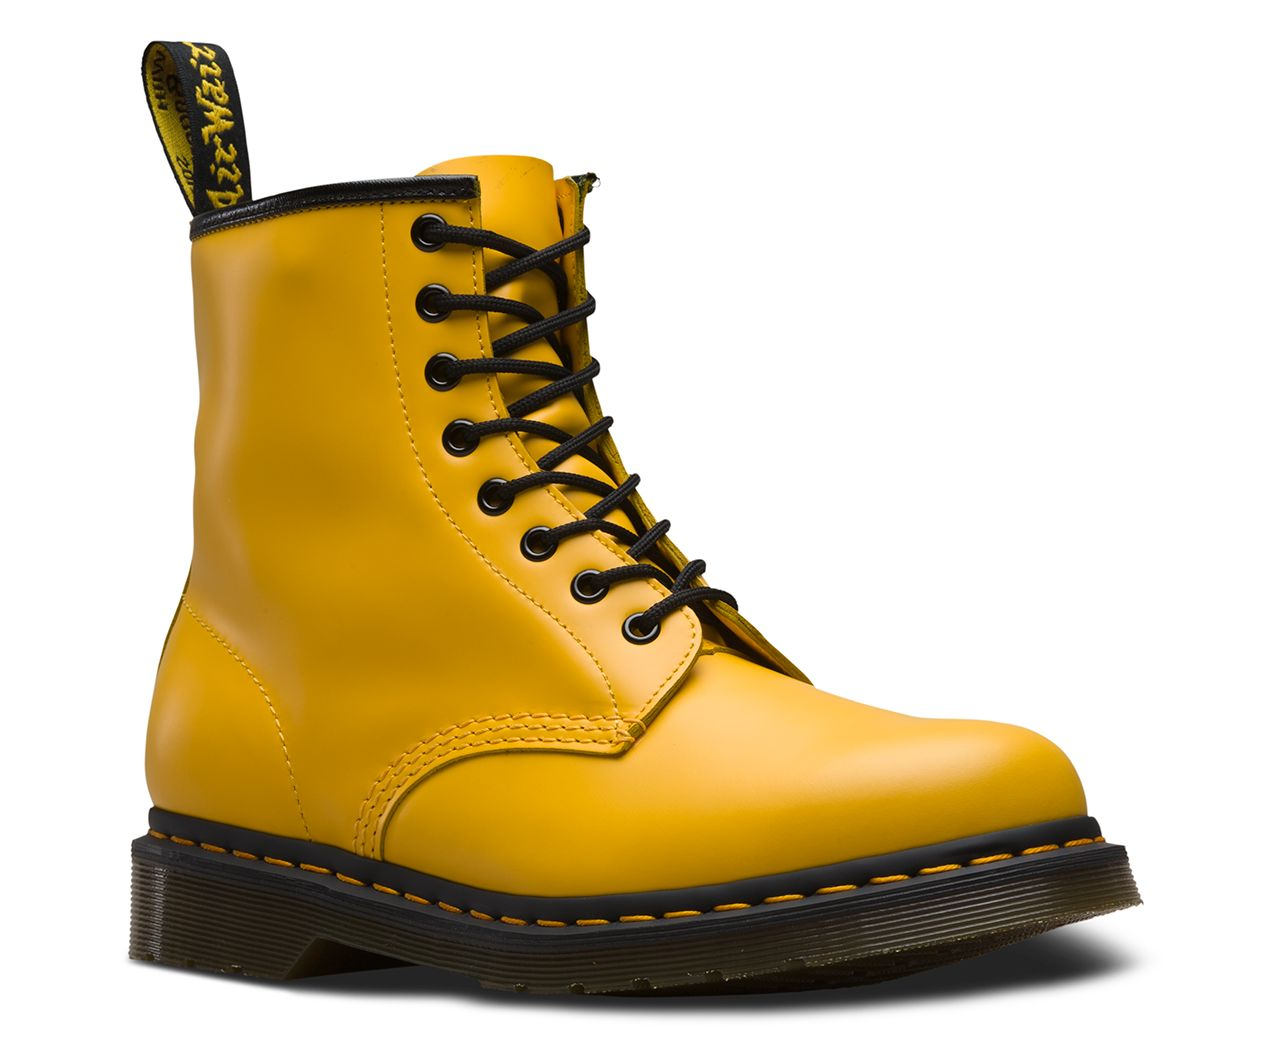 Dr Martens 1460 Smooth Leather Lace Up Boots Leather Lace Up